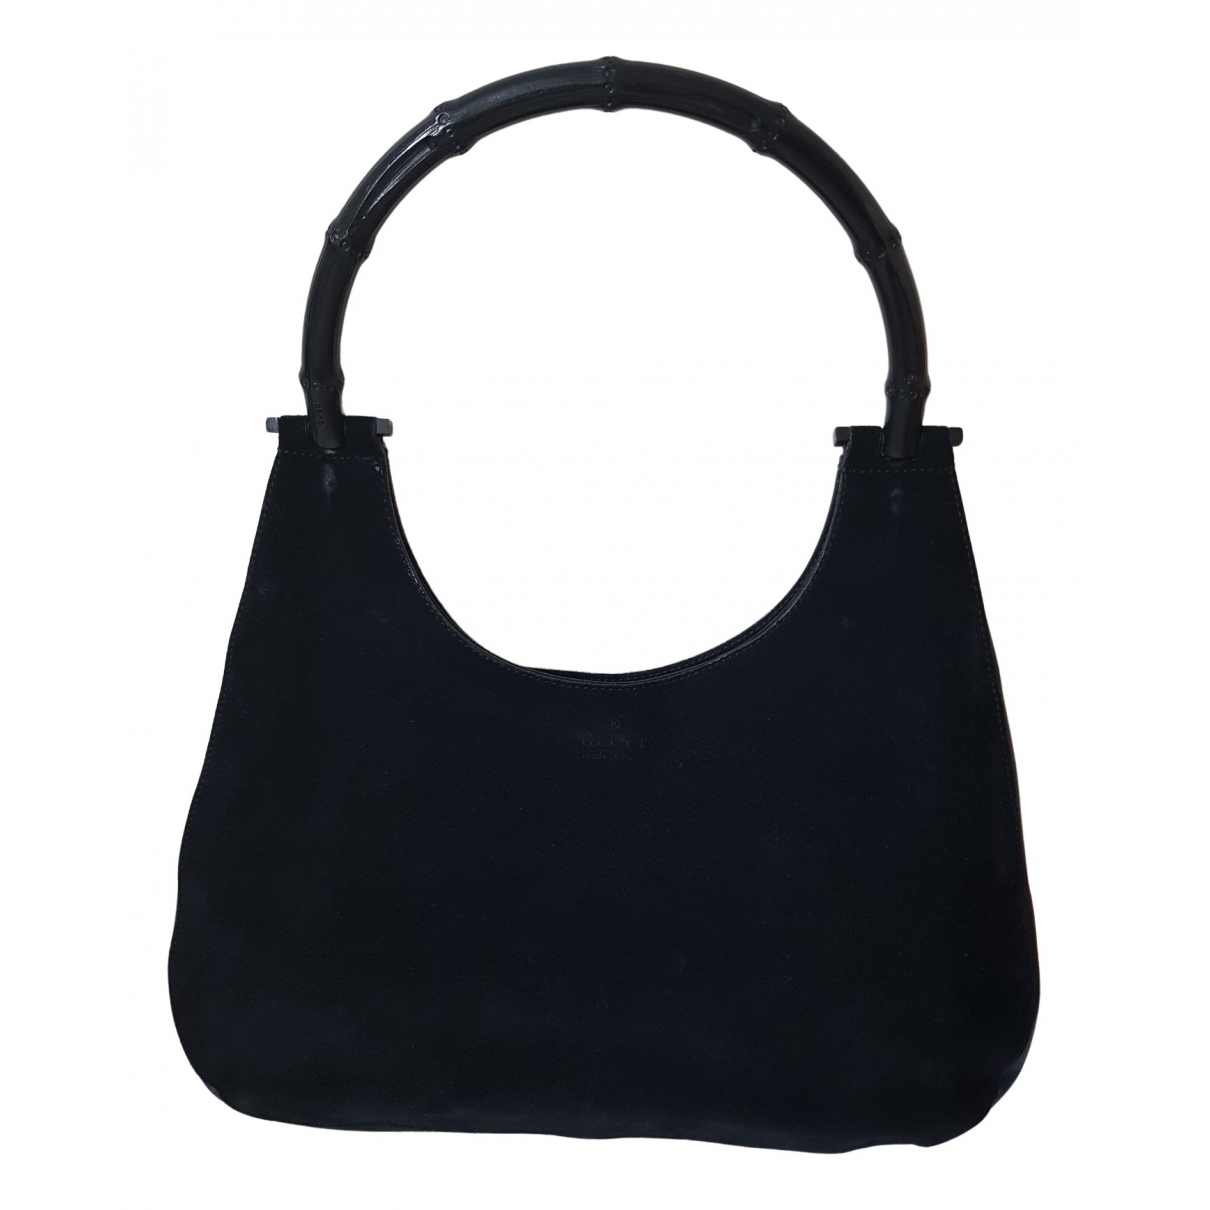 Gucci Bamboo Black Suede handbag for Women \N